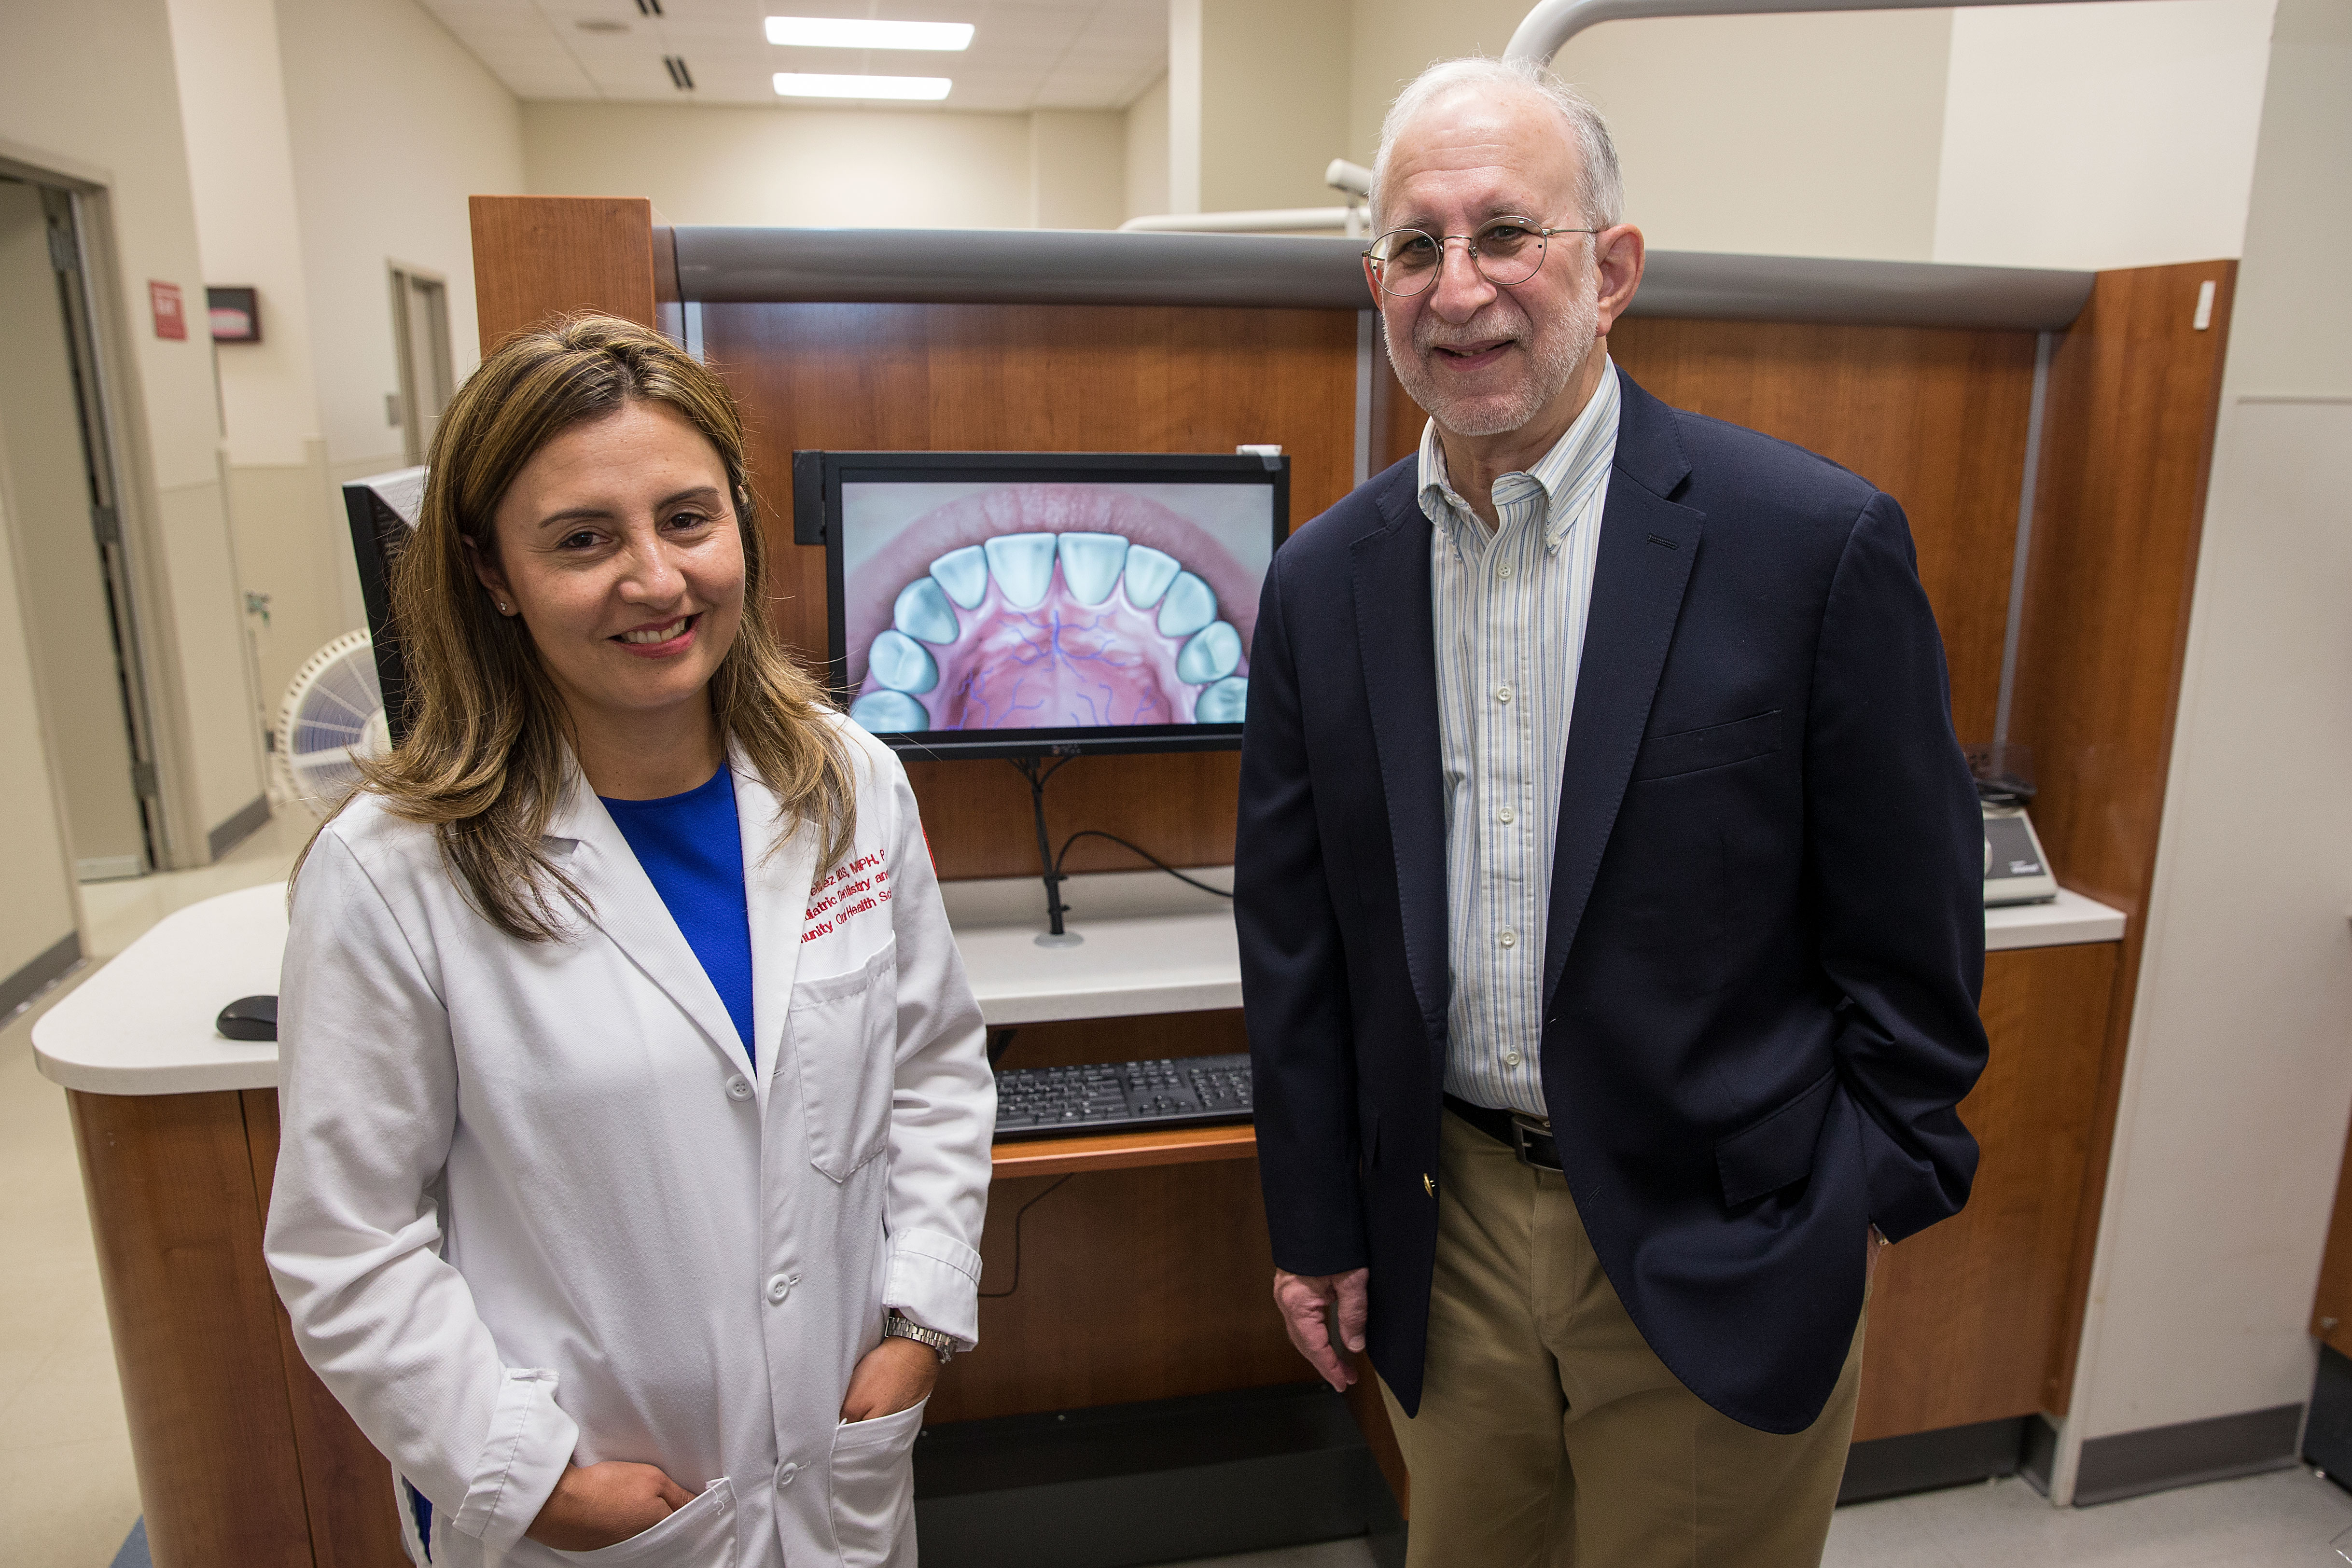 Temple researchers Marisol Tellez Merchán, right, associate professor at Temple University's Kornberg School of Dentistry, and Richard G. Heimberg, the Thaddeus L. Bolton Professor of Psychology in Temple's College of Liberal Arts, with the program they developed to help patients who have dental anxiety.